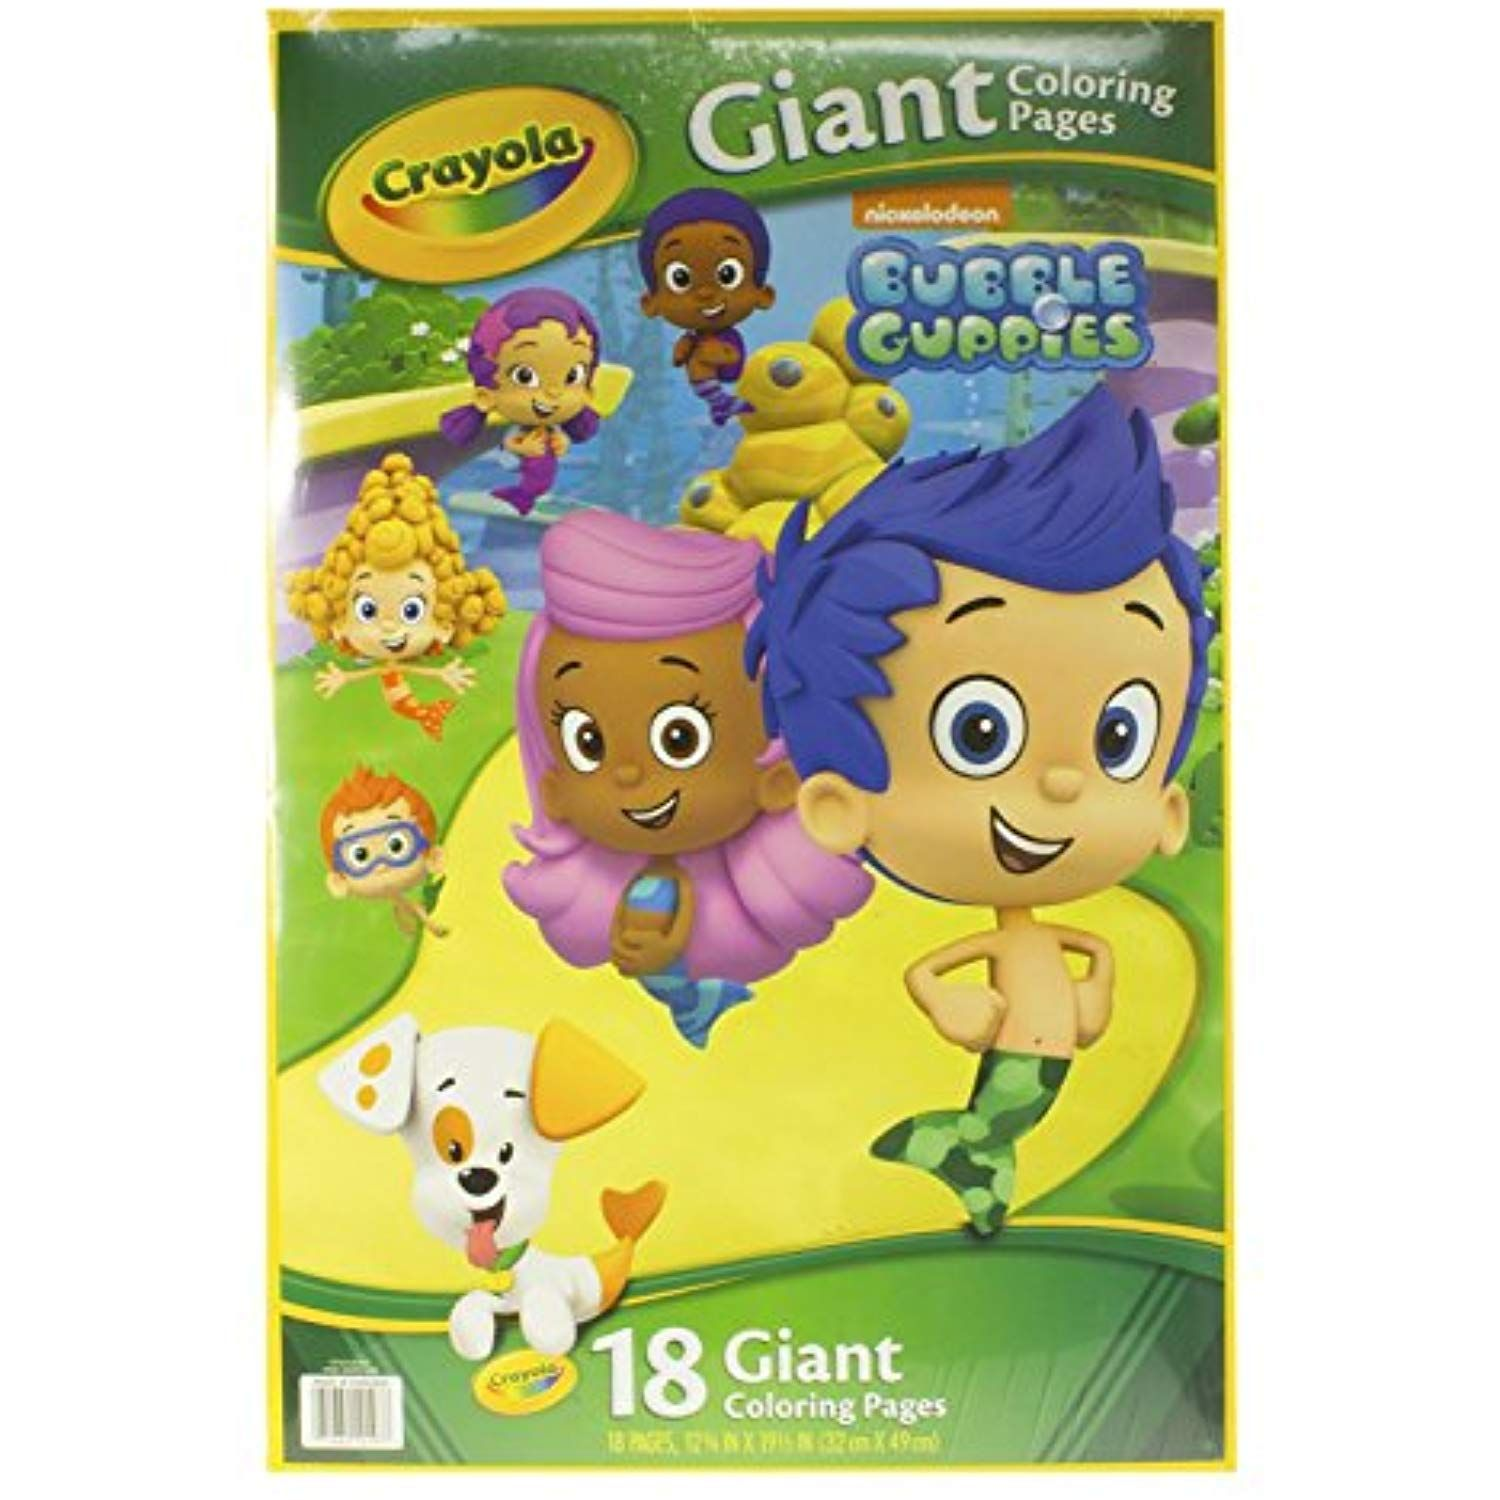 Crayola Bubble Guppies Giant Coloring Pages Click On The Image For Additional Details This Is An Affiliate Link Art Bubble Guppies Crayola Coloring Pages [ 1500 x 1500 Pixel ]